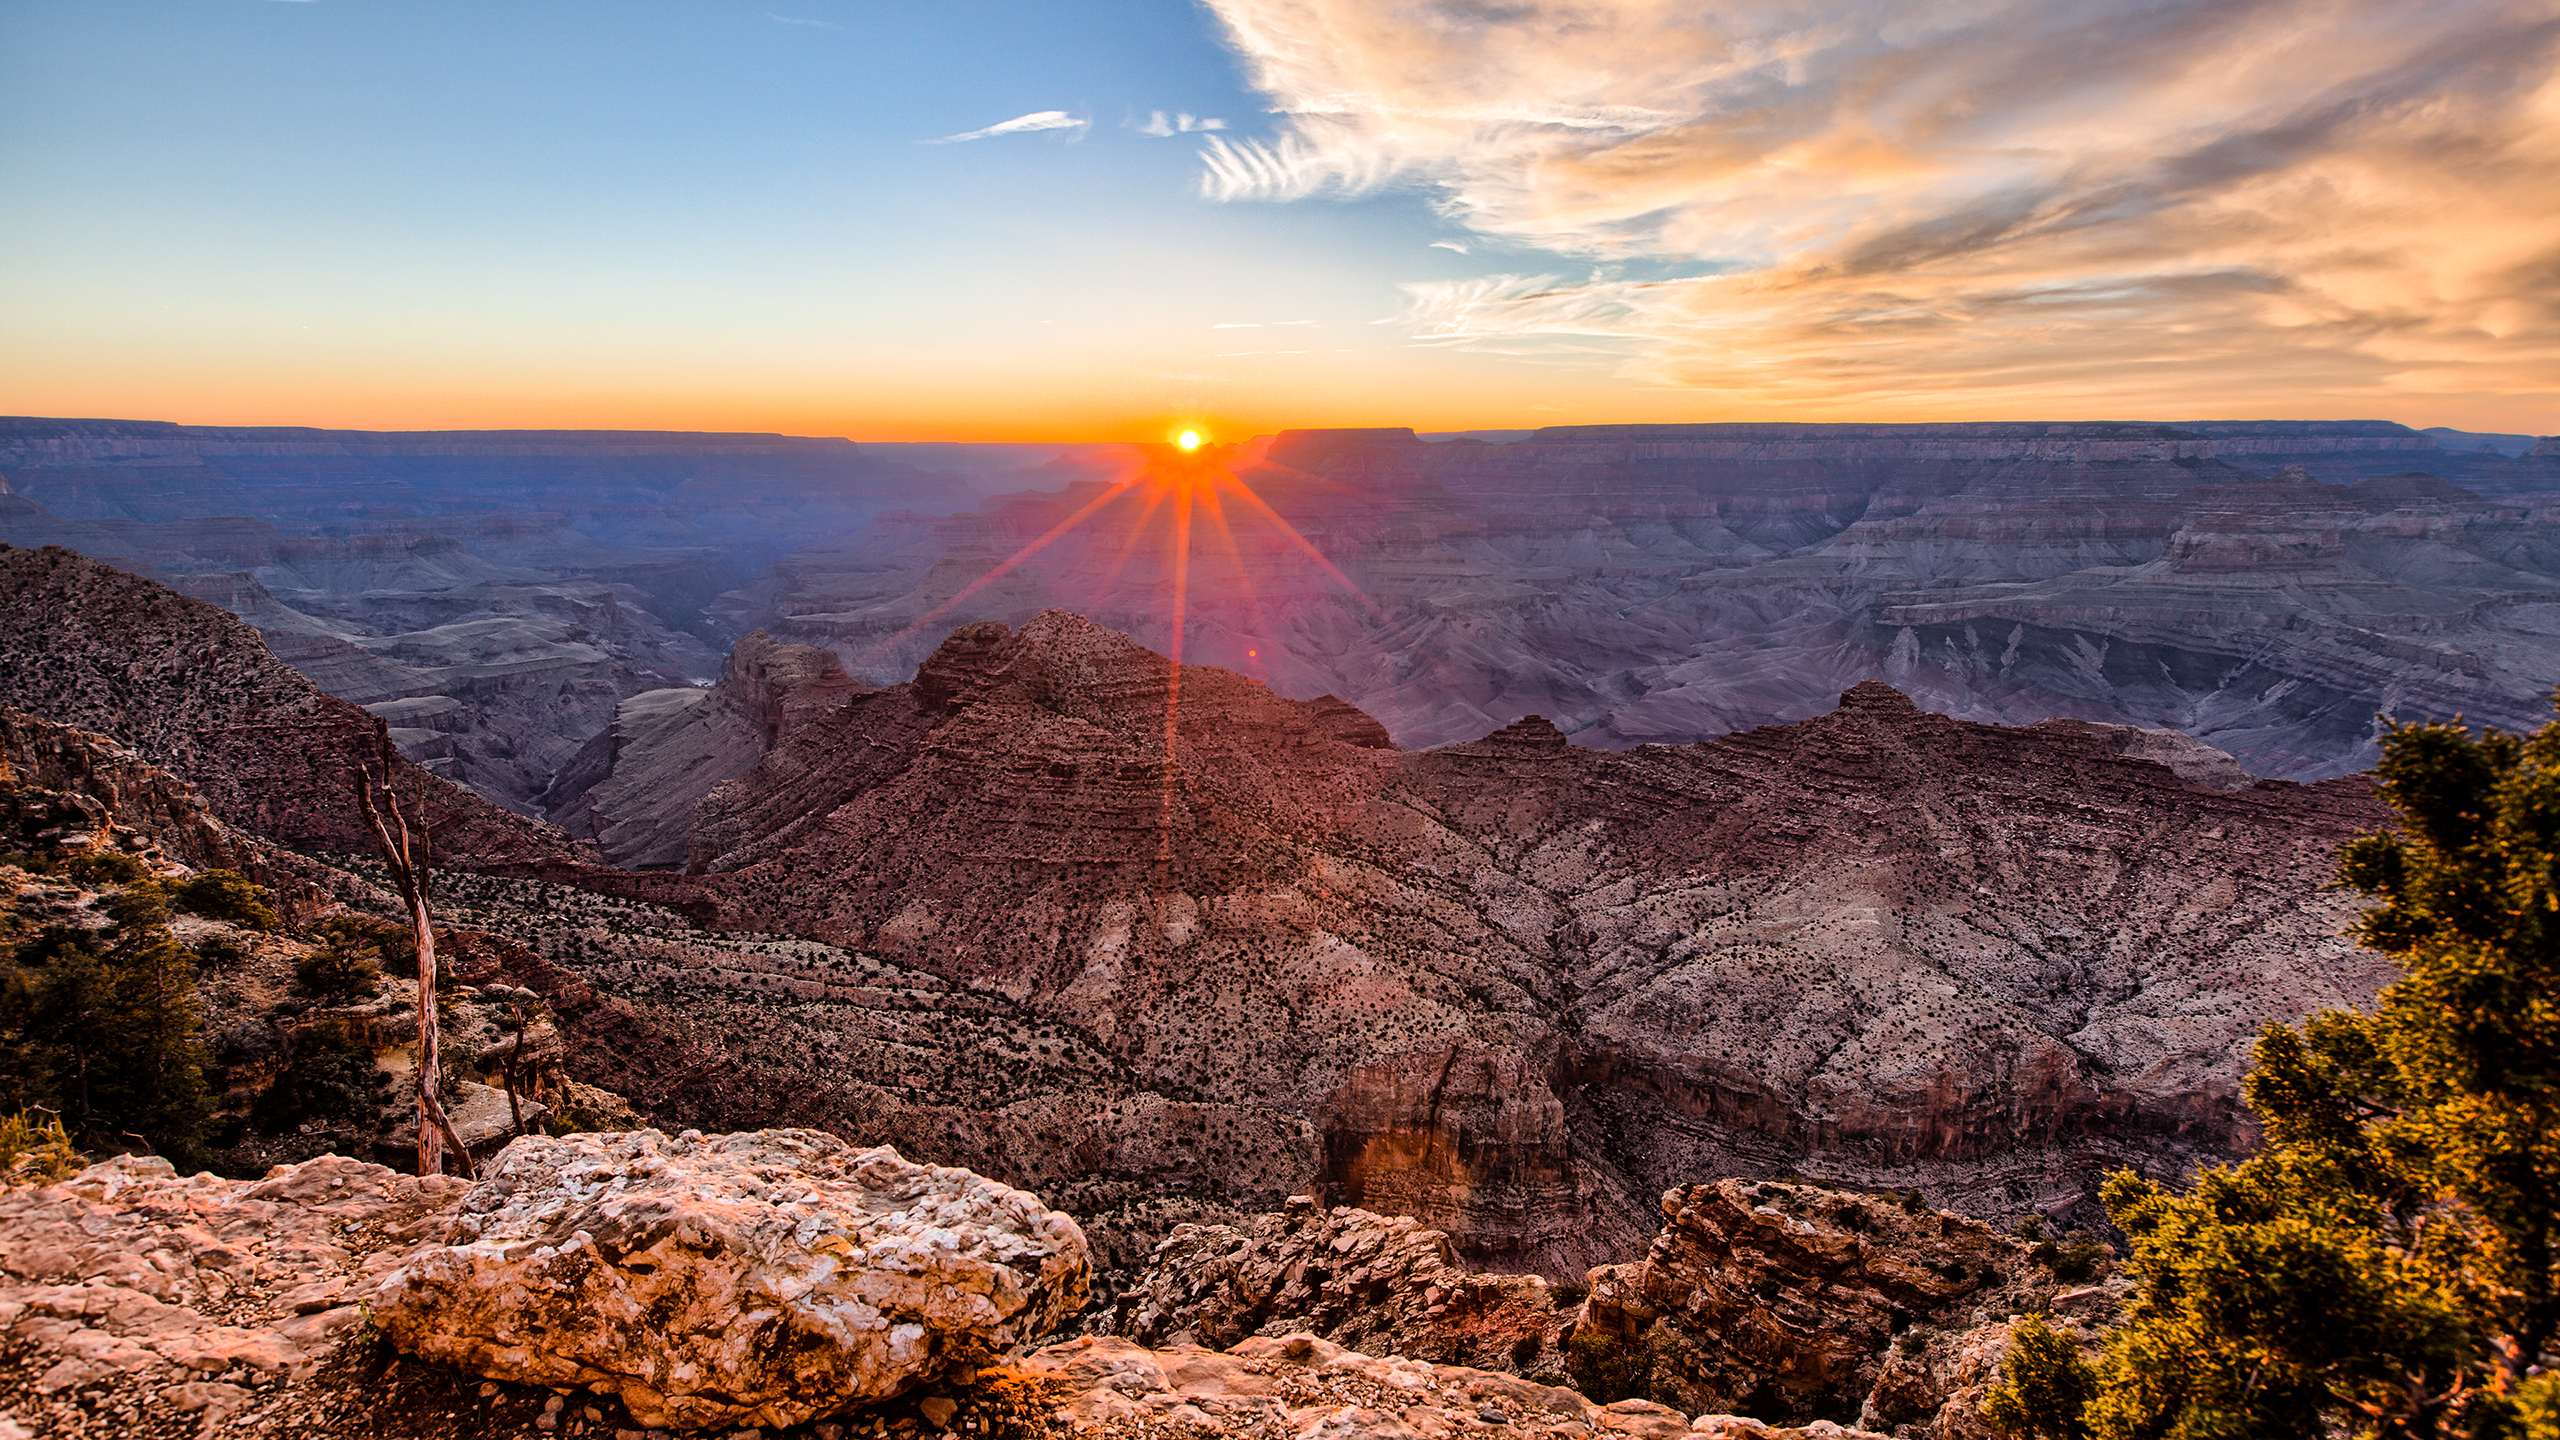 sunset_grand_canyon_wallpaper_2560x1440